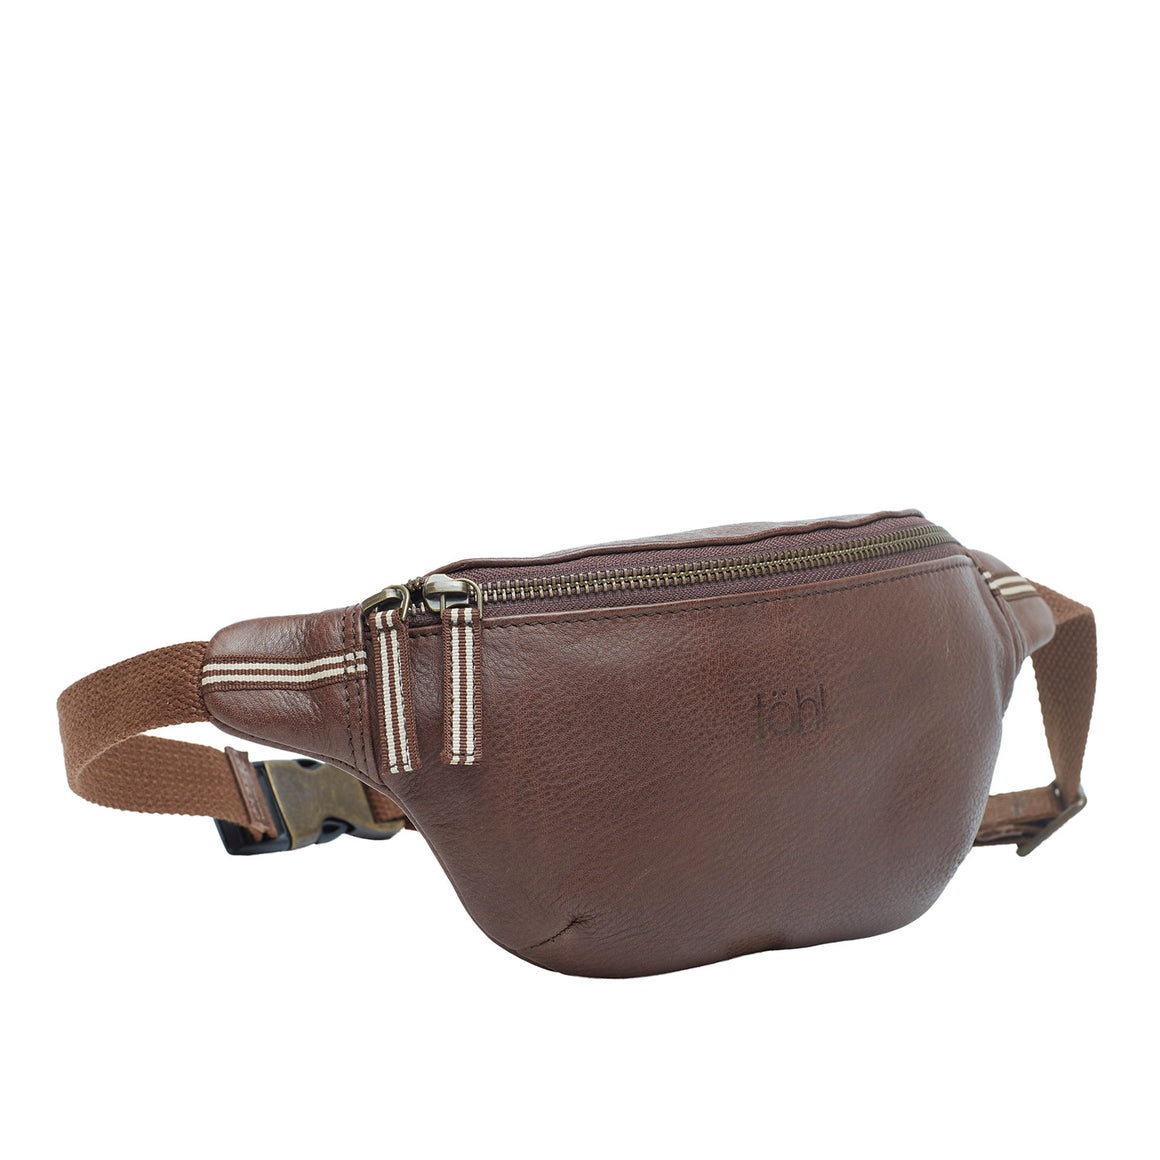 WP 0004 - PRONY MEN'S WAIST POUCHES - MUD